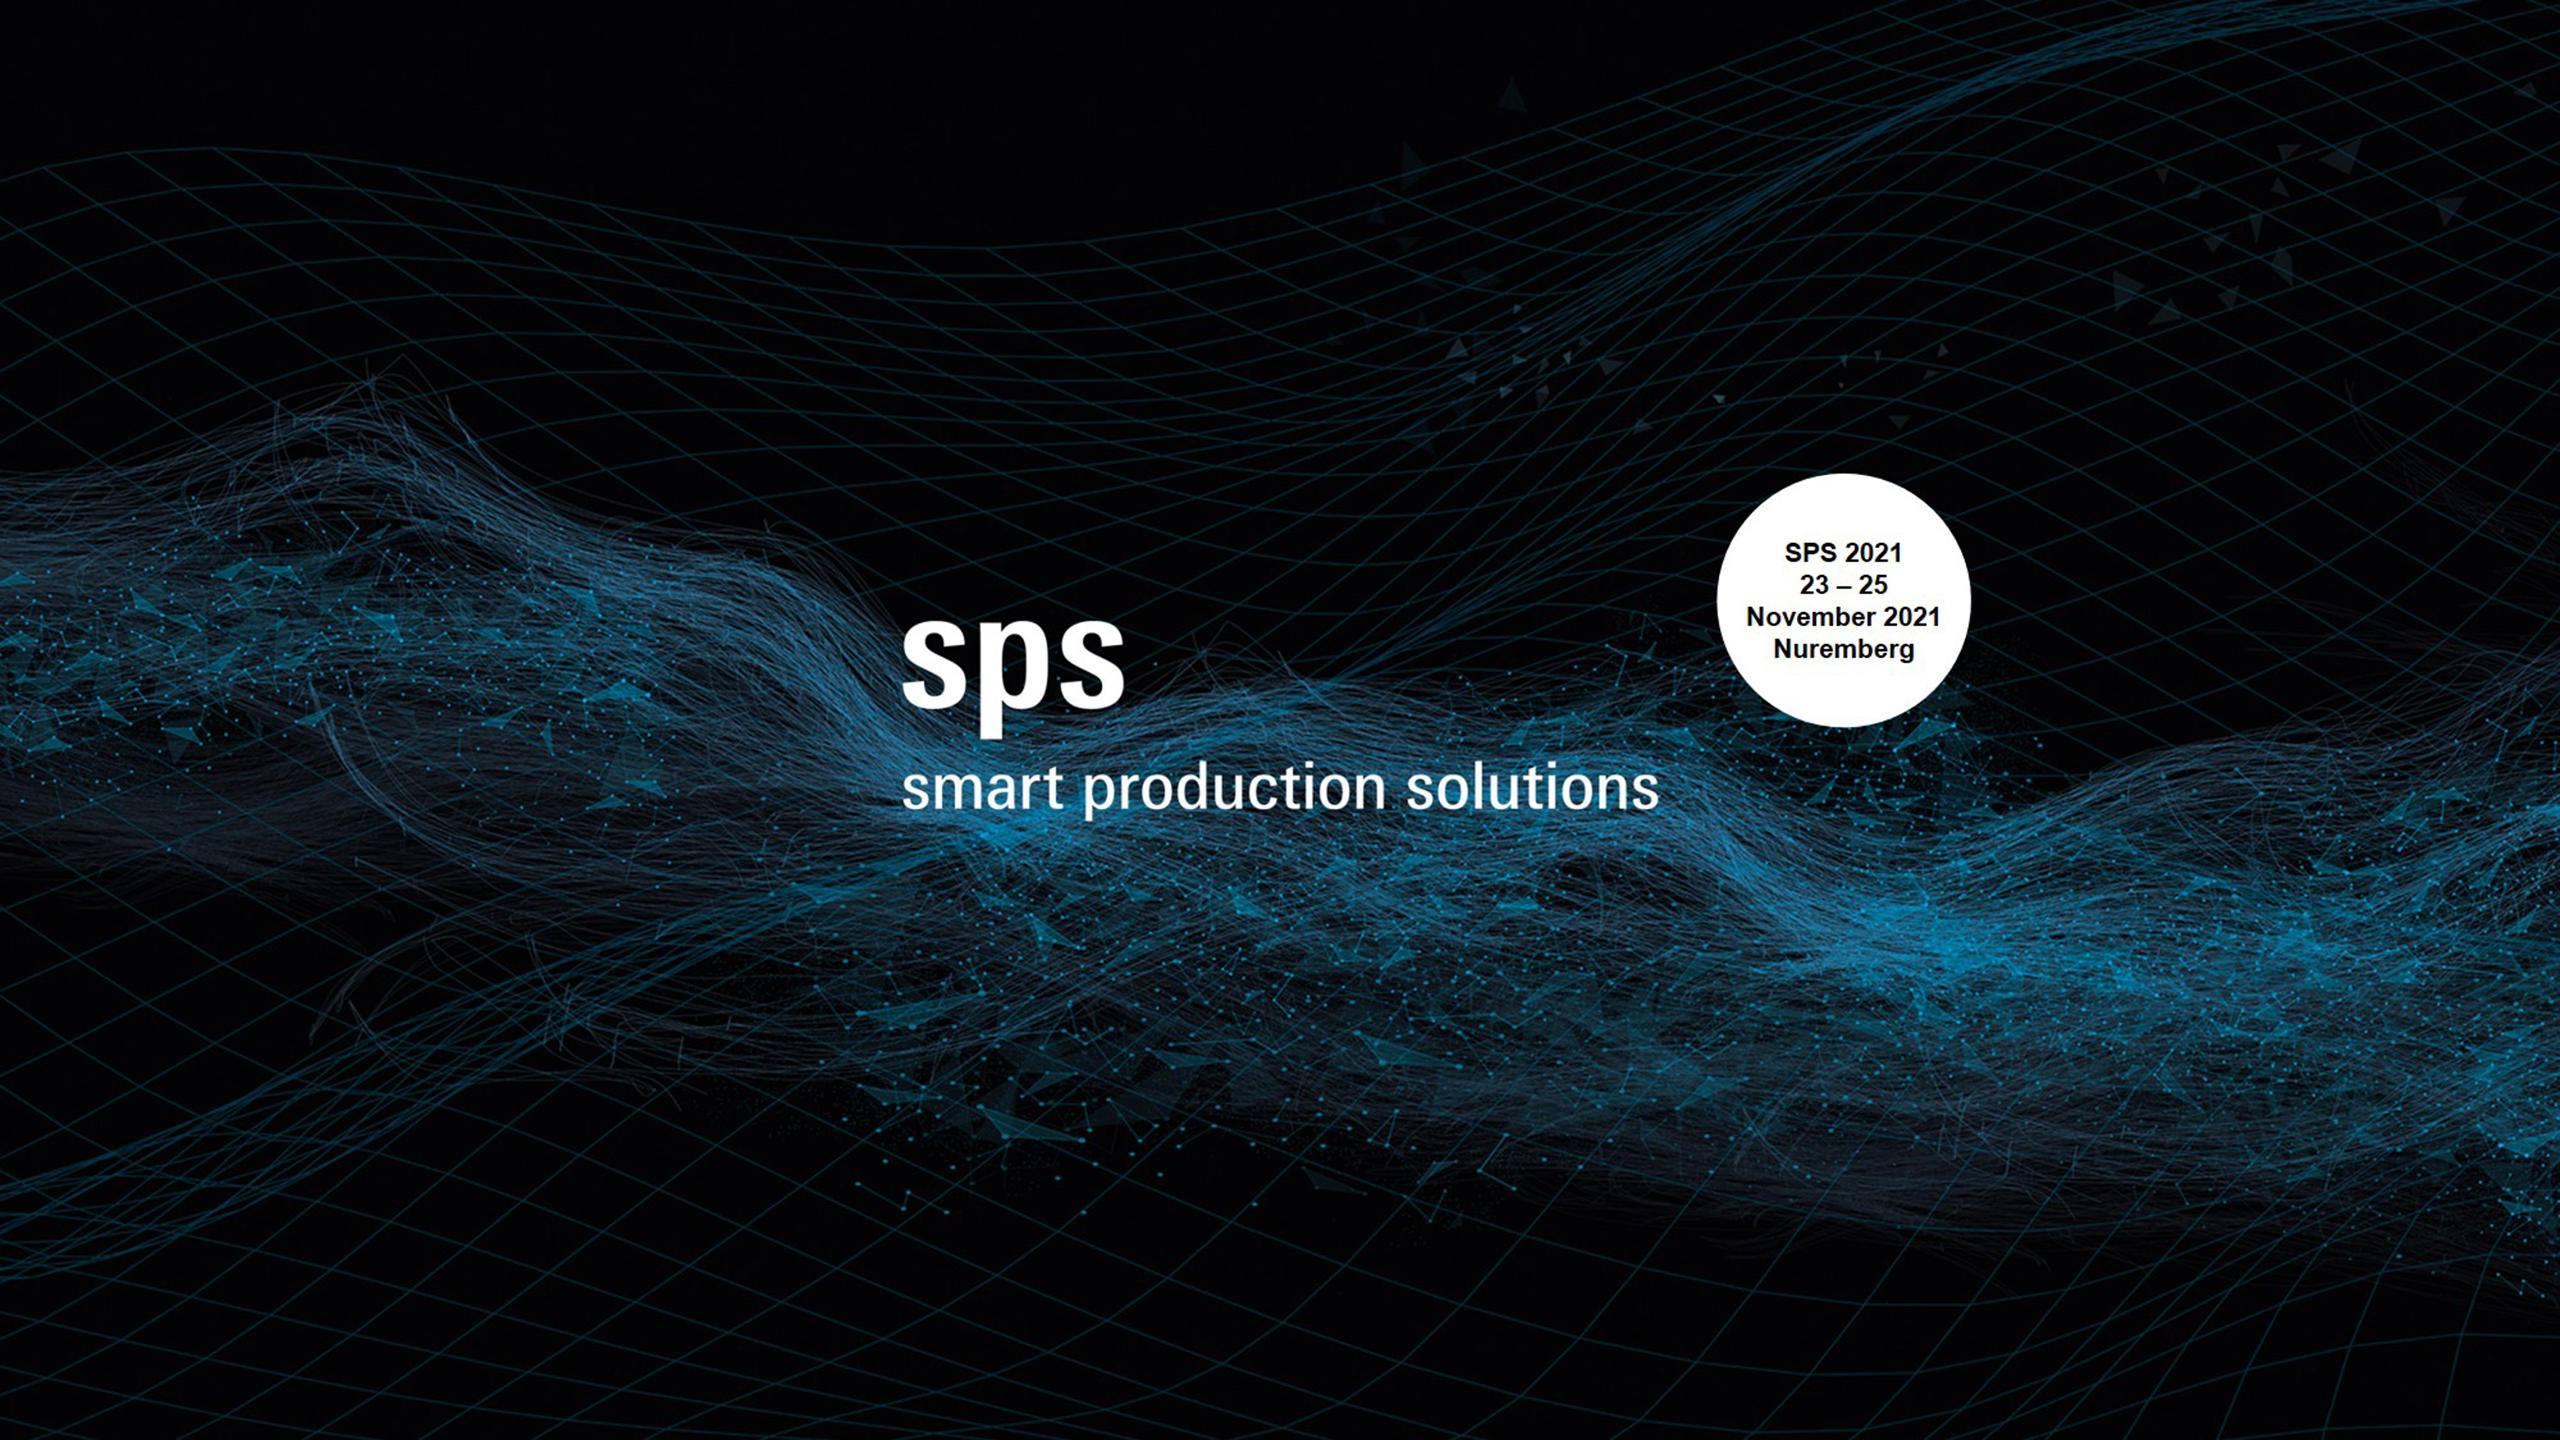 SPS 2021 will take place in Nuremberg